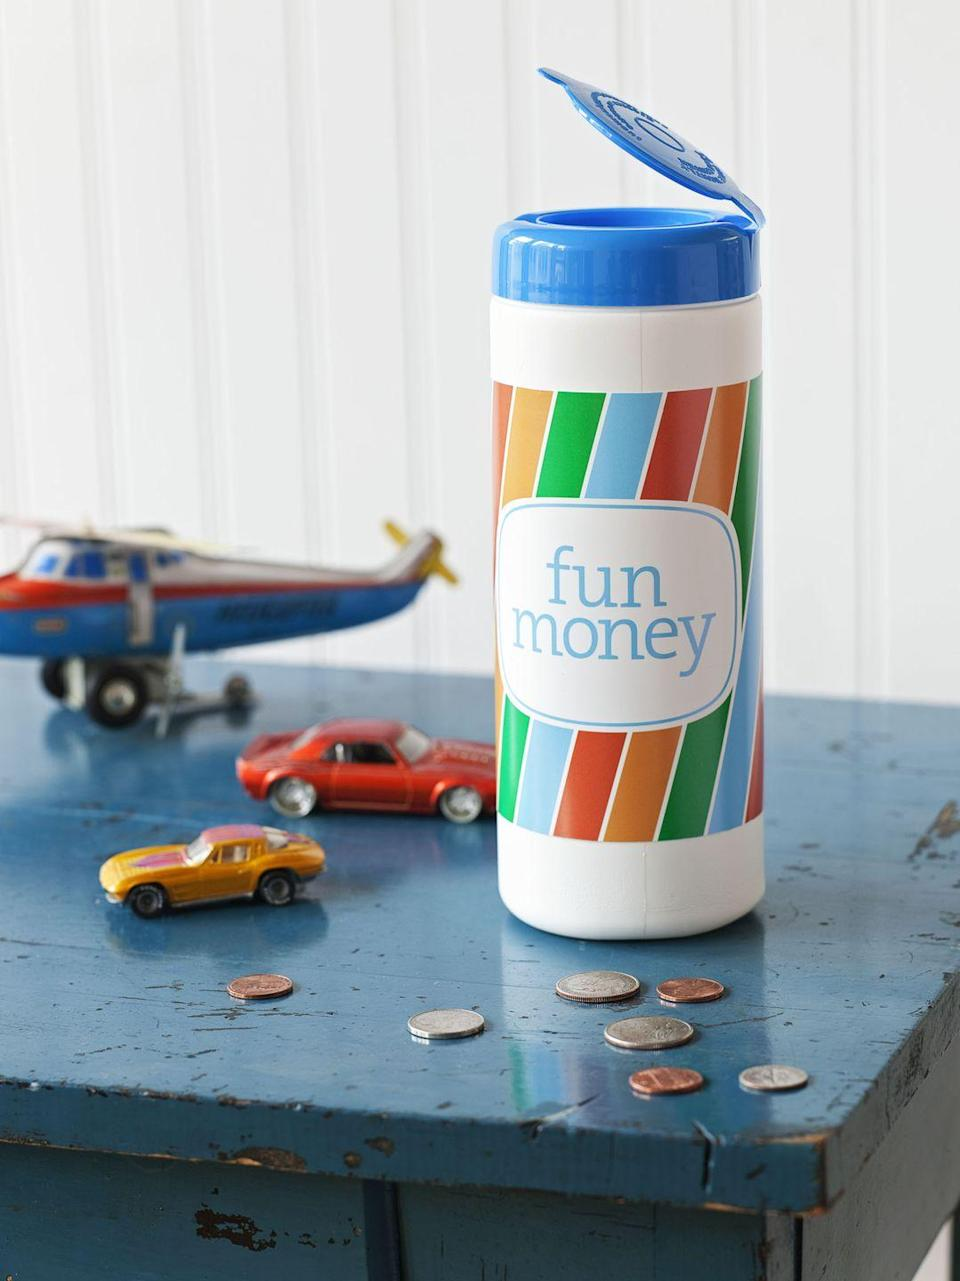 """<p>Want to teach your kids that every penny counts? Make a coin bank out of an empty disinfectant wipes container. Clear the outside of the container and attach your own """"Fun Money"""" label. </p>"""